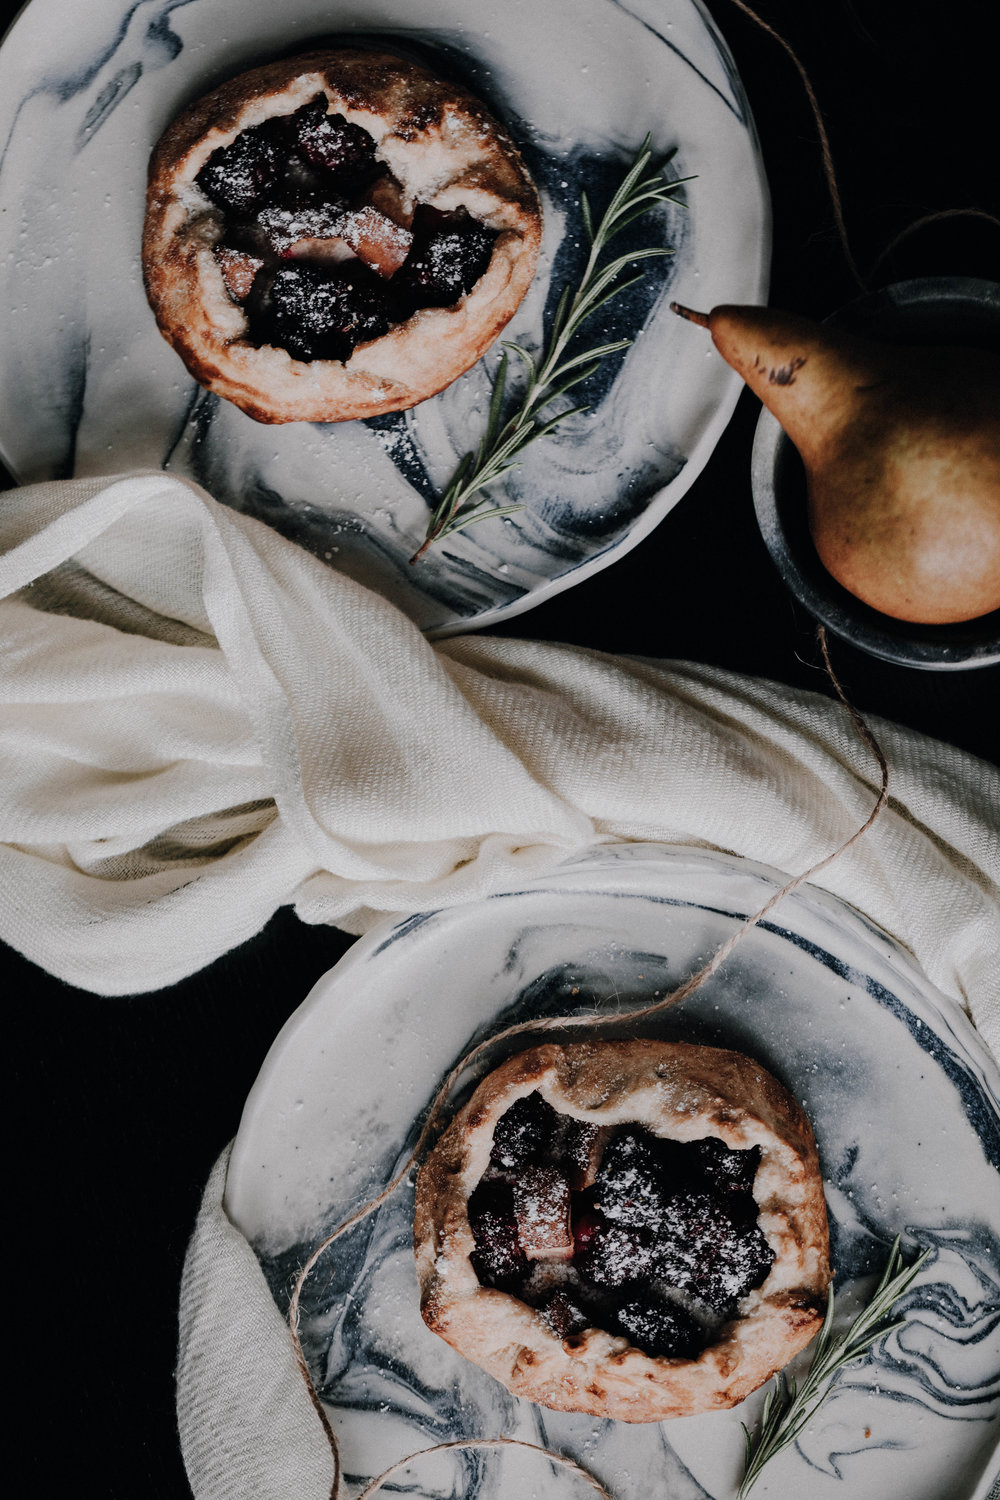 Sheena_Shahangian_Photography_Food_&_Lifestyle_Blackberry_and_Pear_Galettes-36.jpg